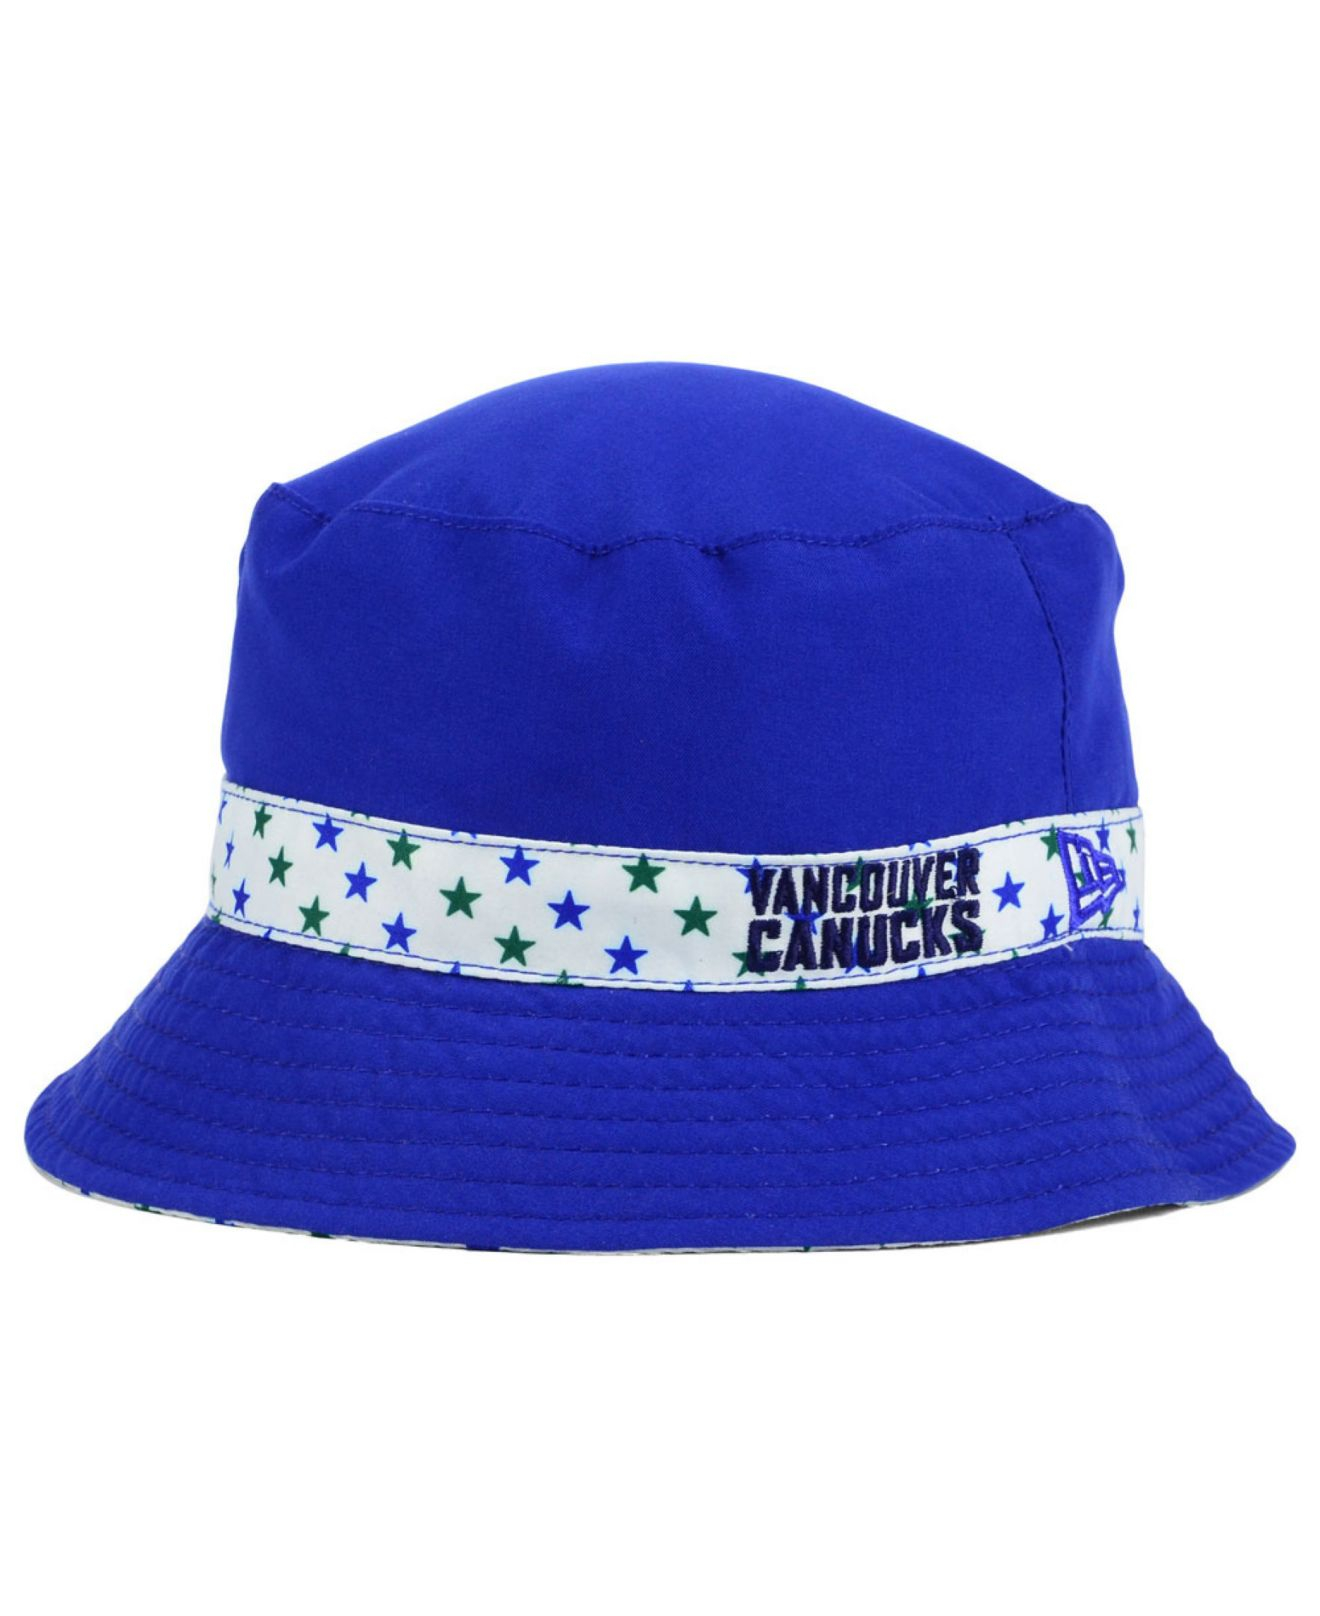 9622ada1645 ... adidas denim bucket hat by actualteen on etsy 20.00 f2334 bea3d   cheapest lyst ktz kids vancouver canucks reversible bucket hat in blue  4bb86 7e154